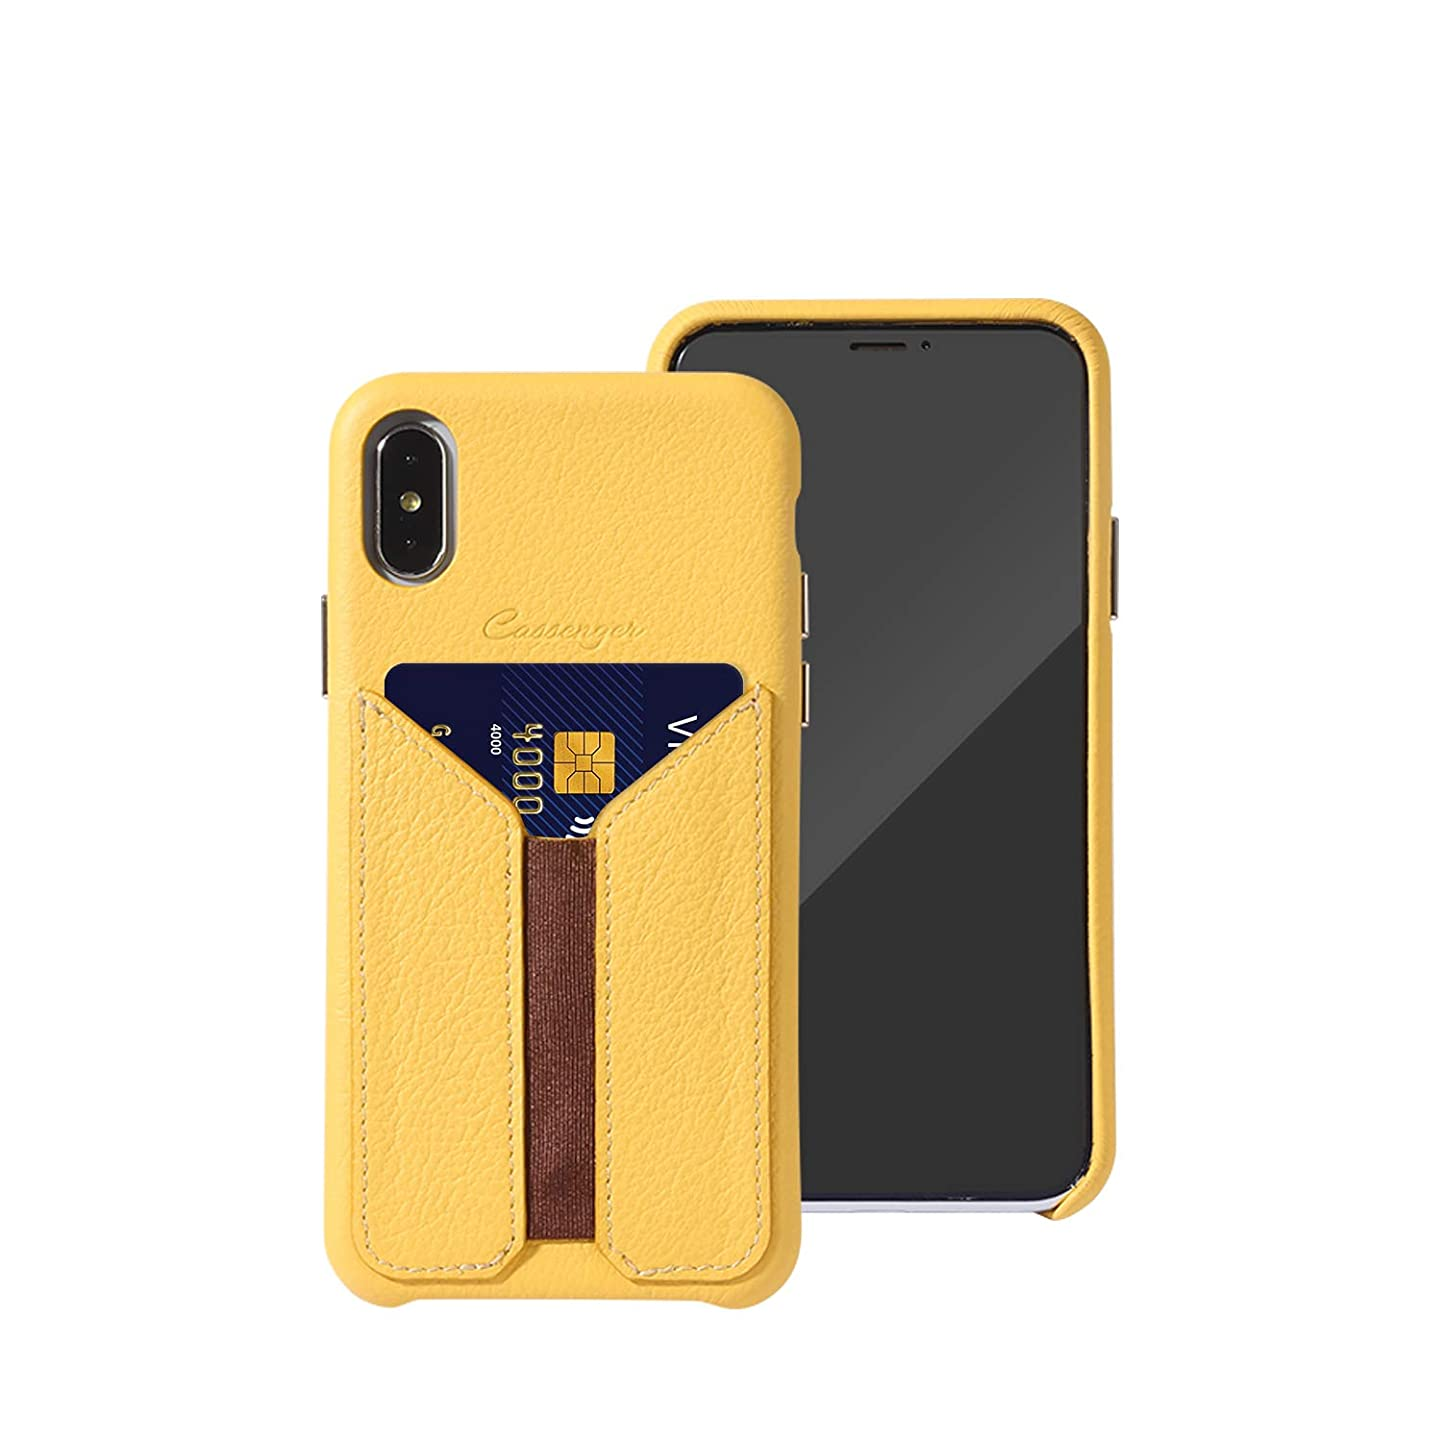 Cassenger Slim Fit Genuine Italian Leather with Card Slot Holder Wallet Case Compatible with iPhone XR-Yellow mcrjhygkbmz1